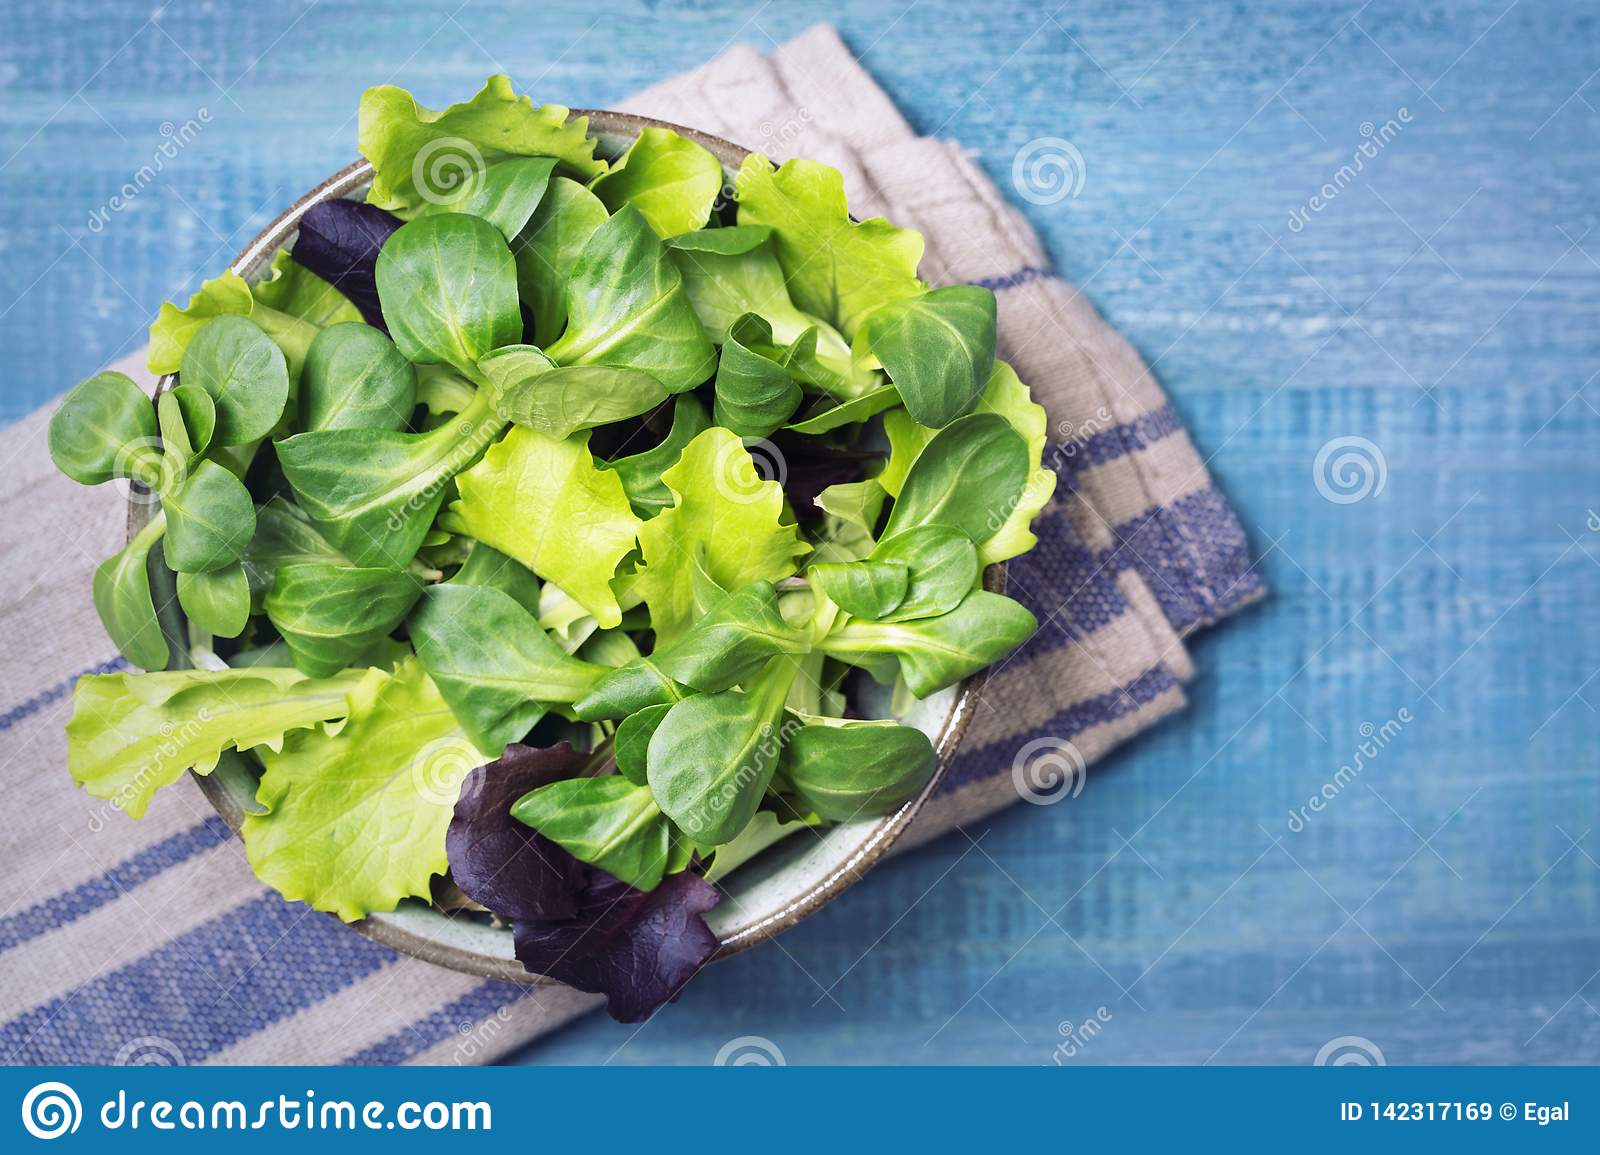 Mixed green salad leaves in a bowl